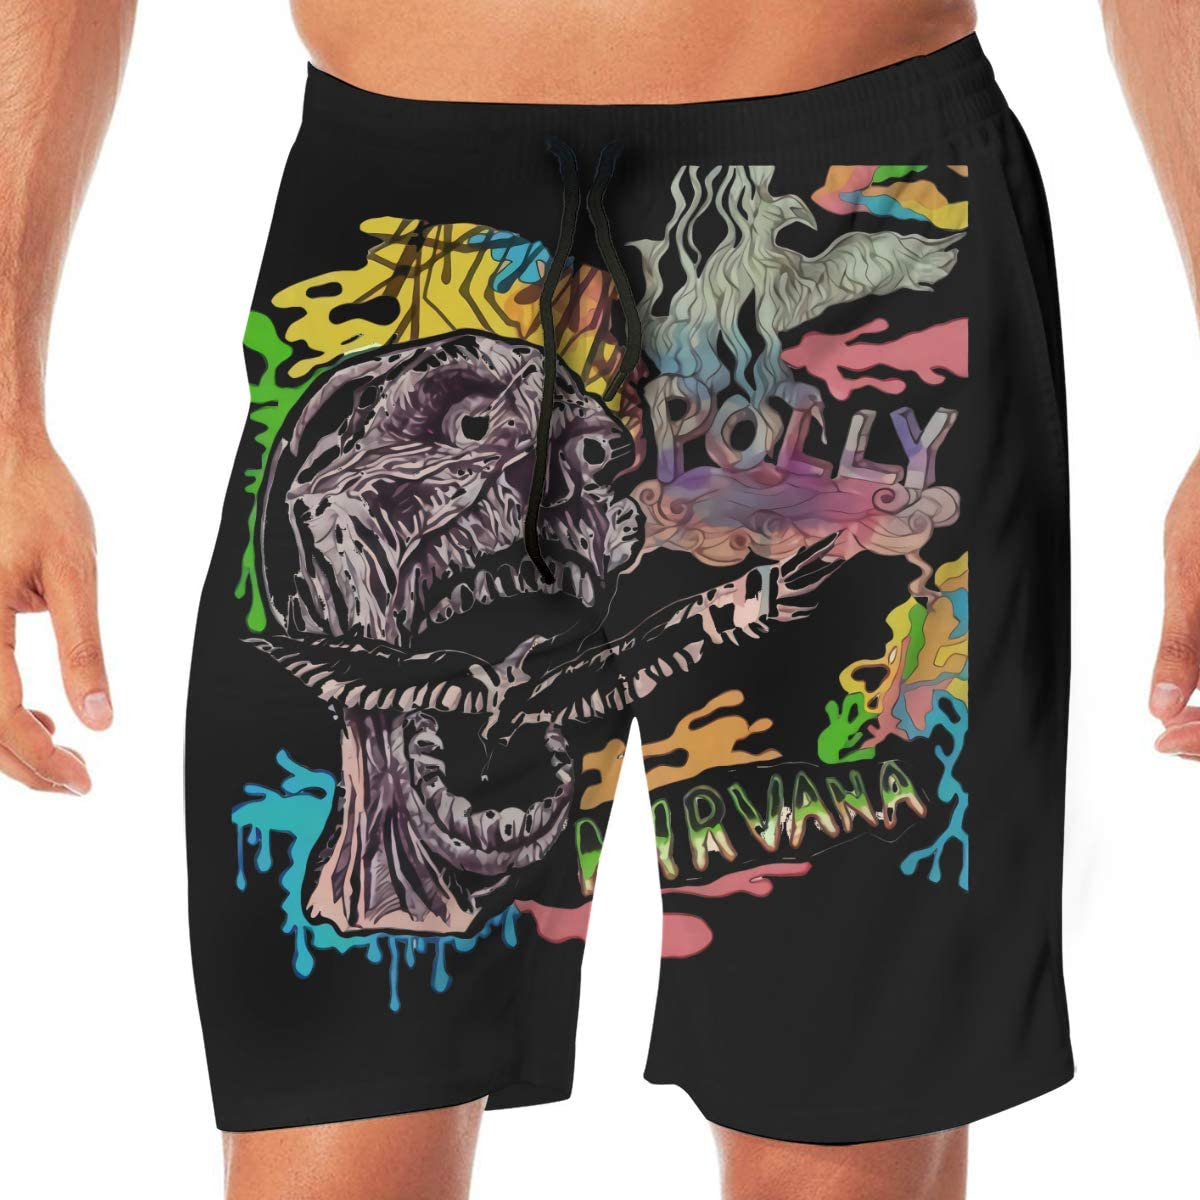 Nirvana Skeleton Eagle Quick DrySwim Trunks Water Shorts Swimsuit Beach Shorts